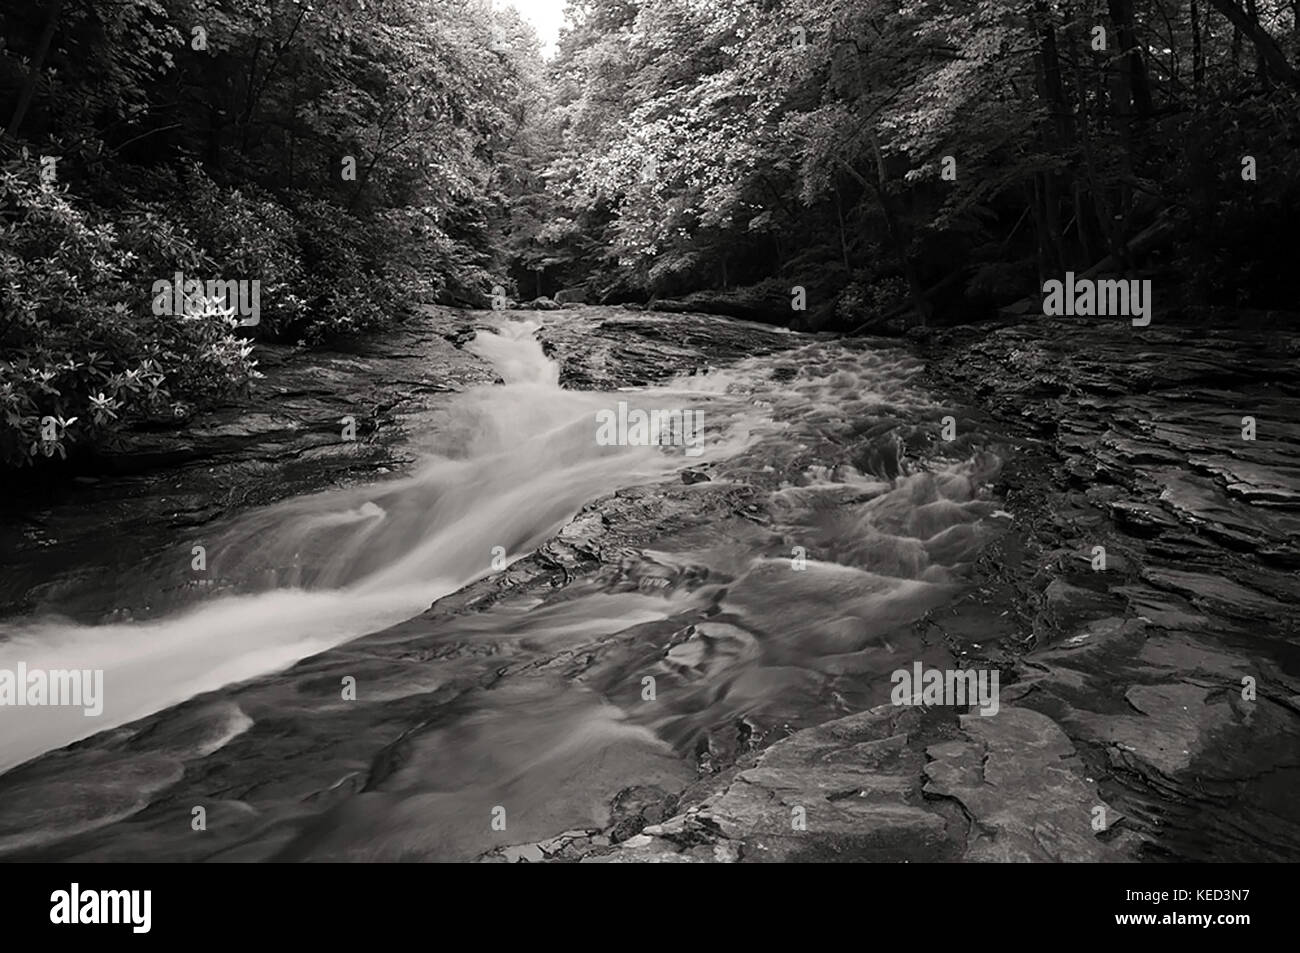 A mountain stream flowing though the woods in black and white - Stock Image